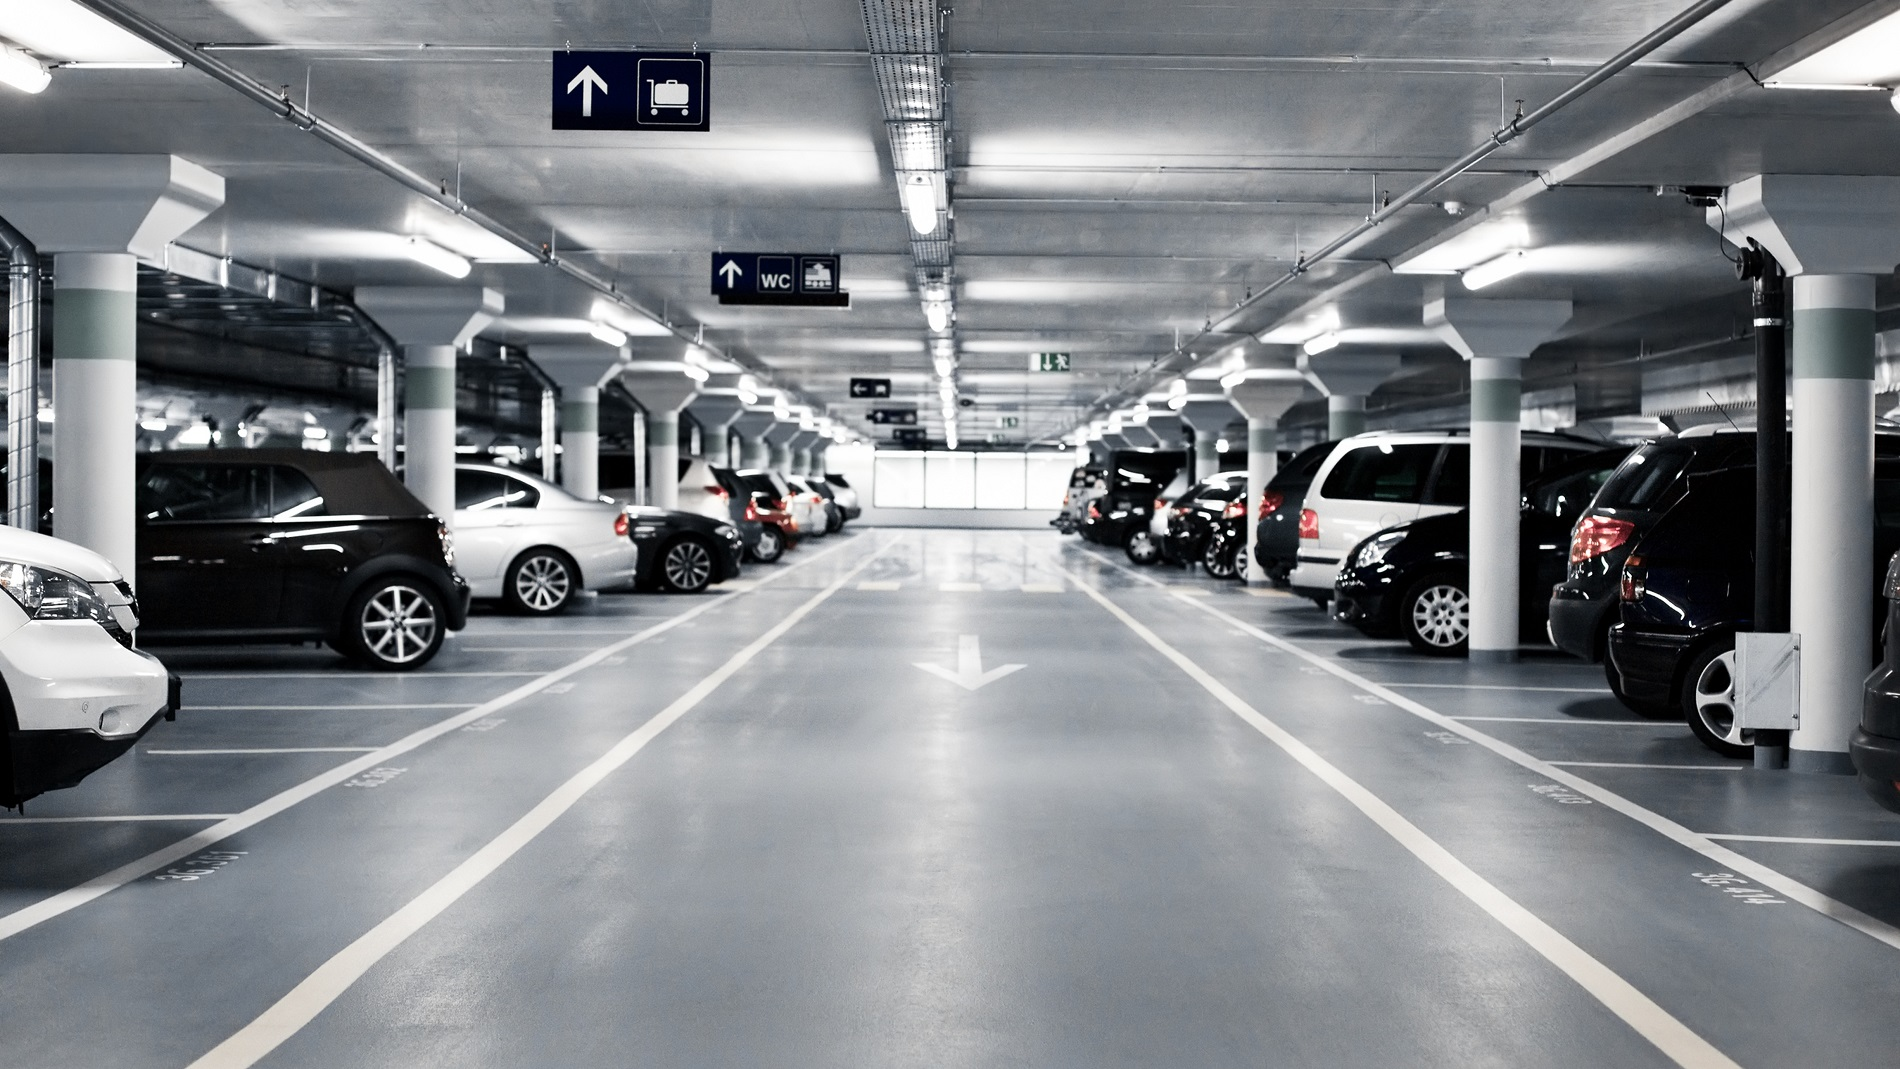 Beautyworld Middle East - Parking